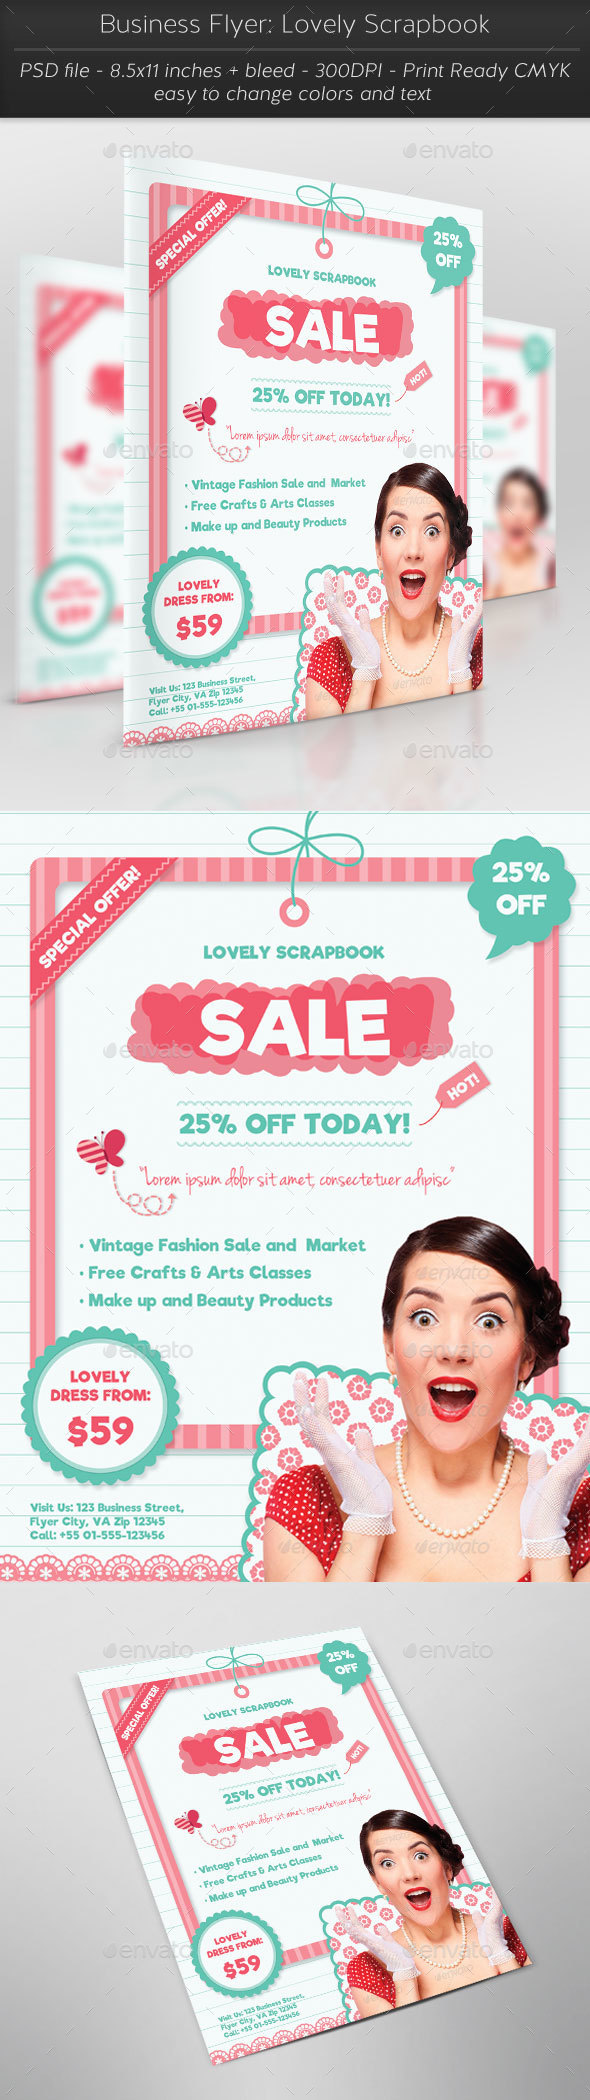 Business Flyer: Lovely Scrapbook - Flyers Print Templates